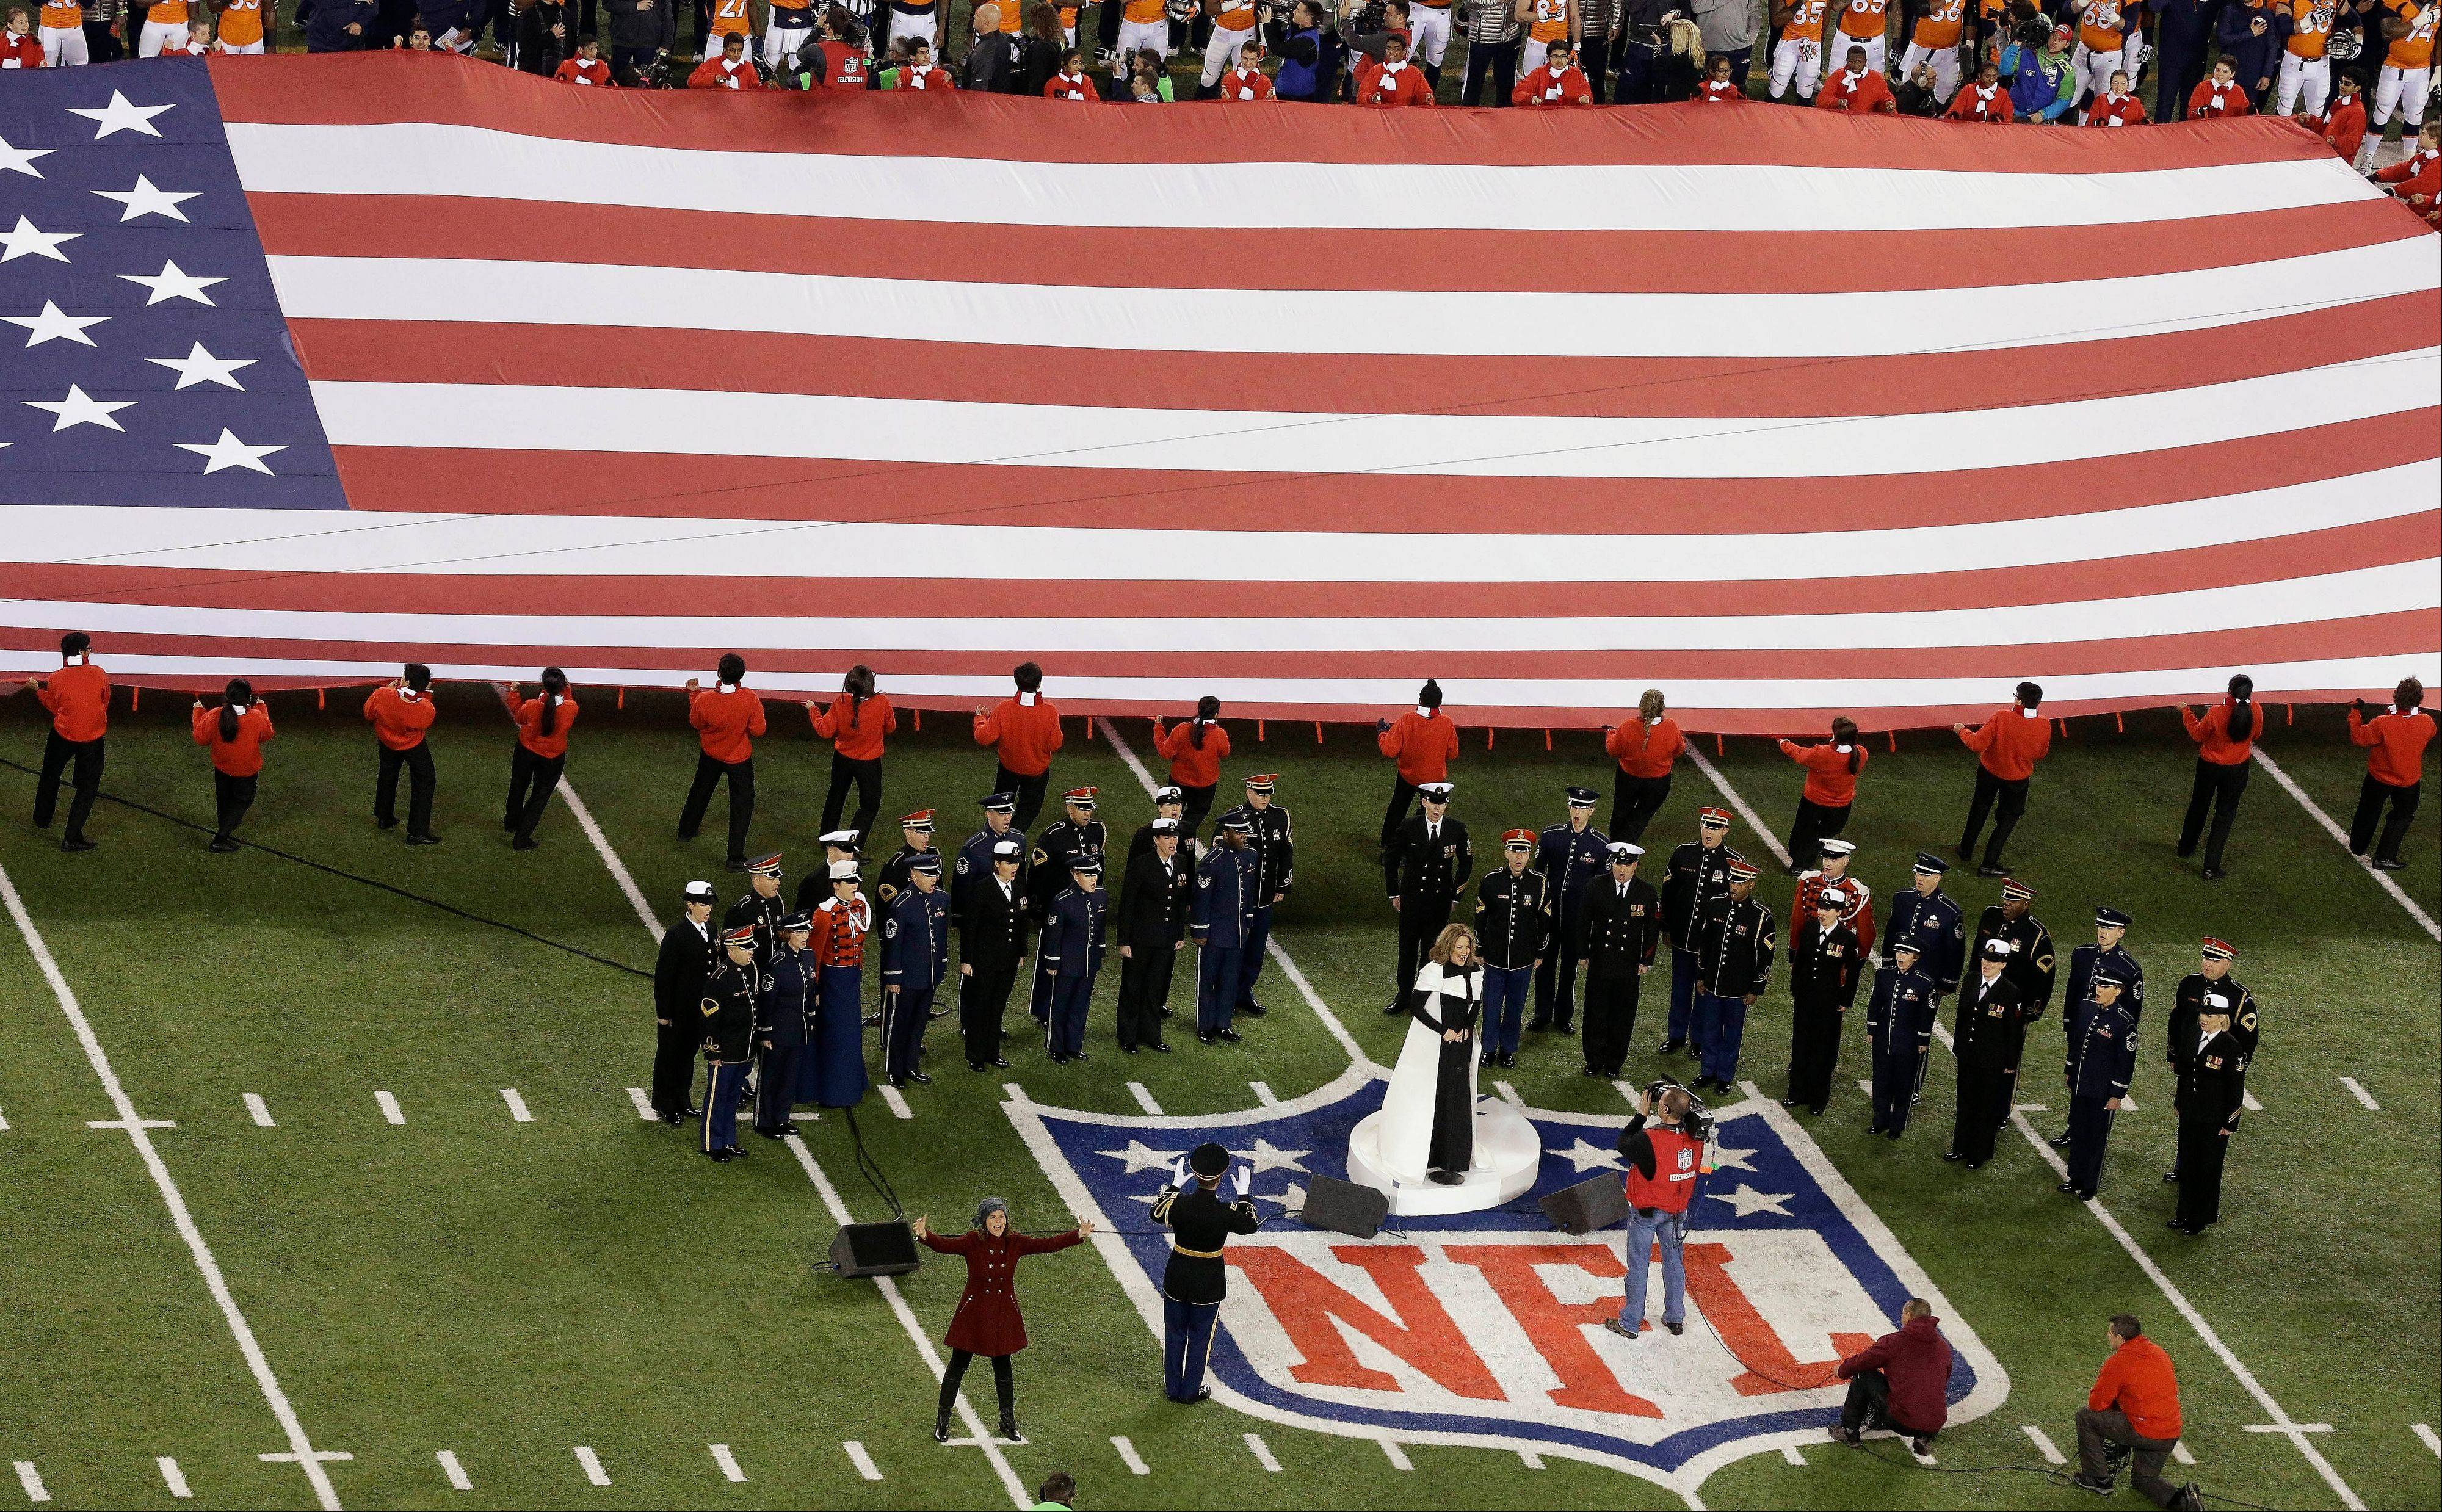 Opera singer Ren�e Fleming sings the national anthem before the NFL Super Bowl XLVIII football game.